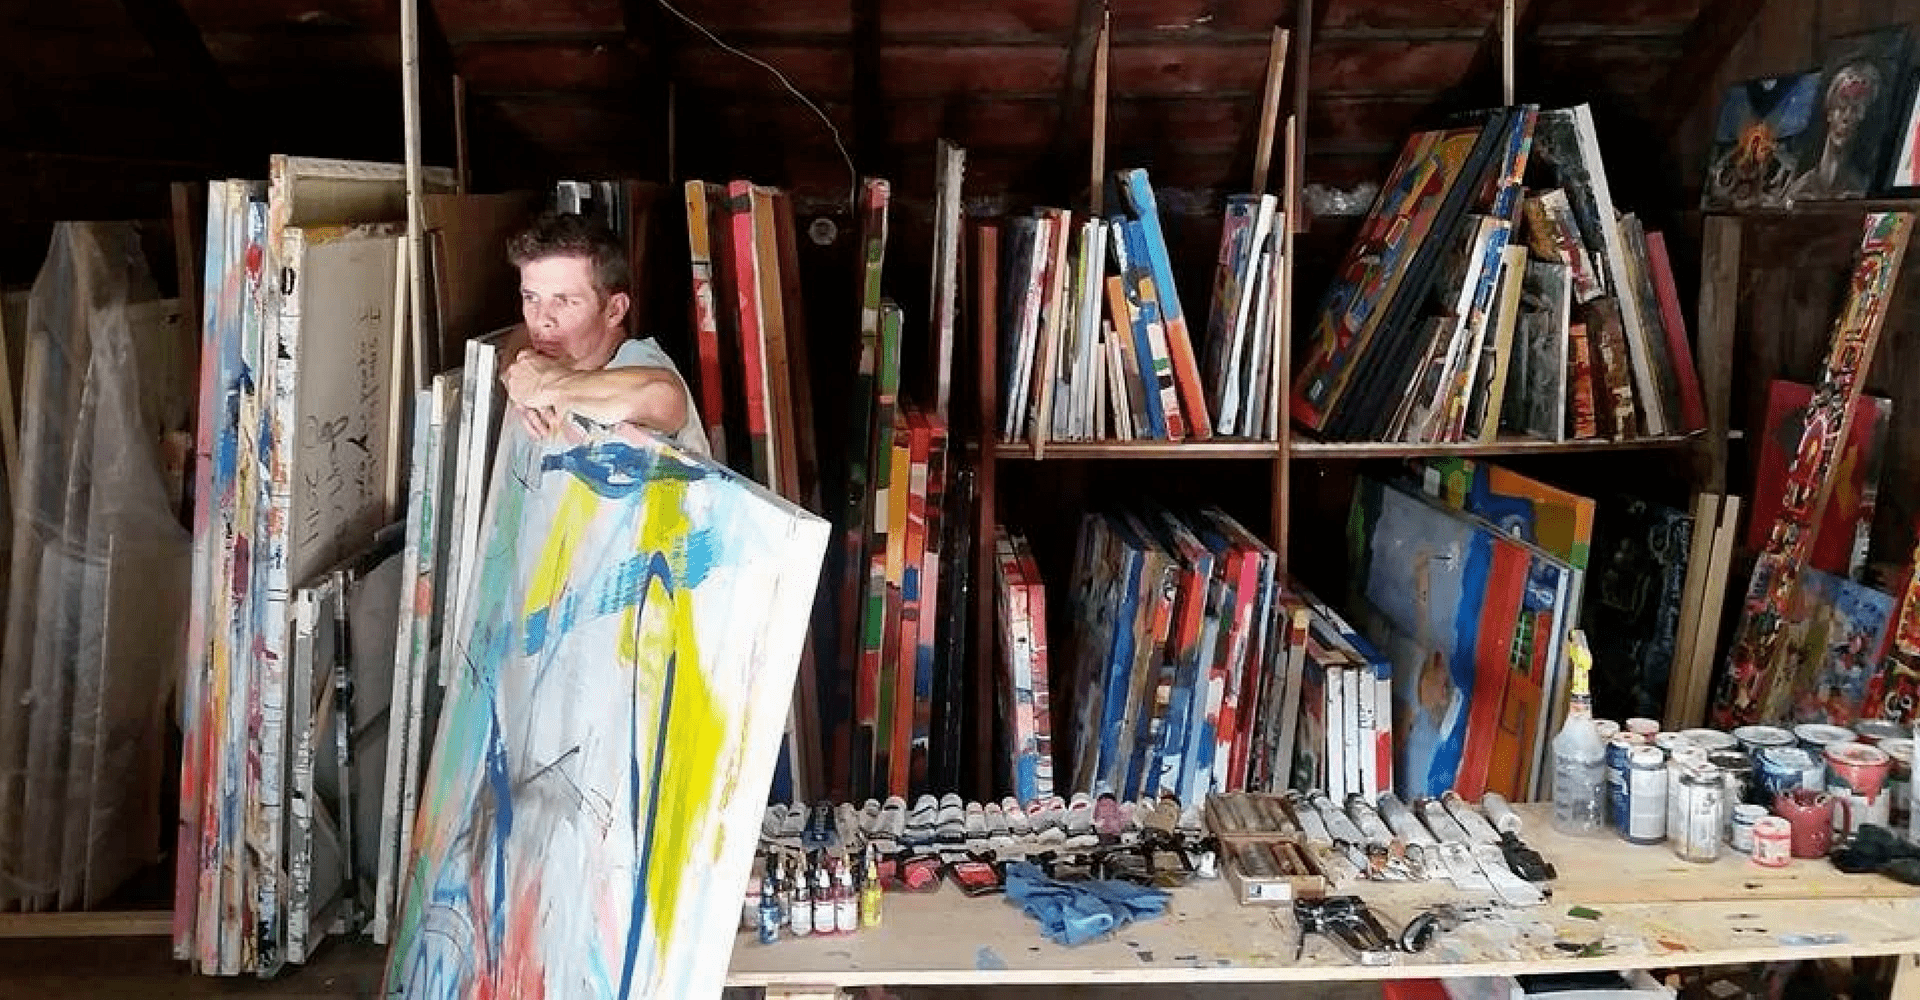 artist joseph ferm in studio with large canvasses